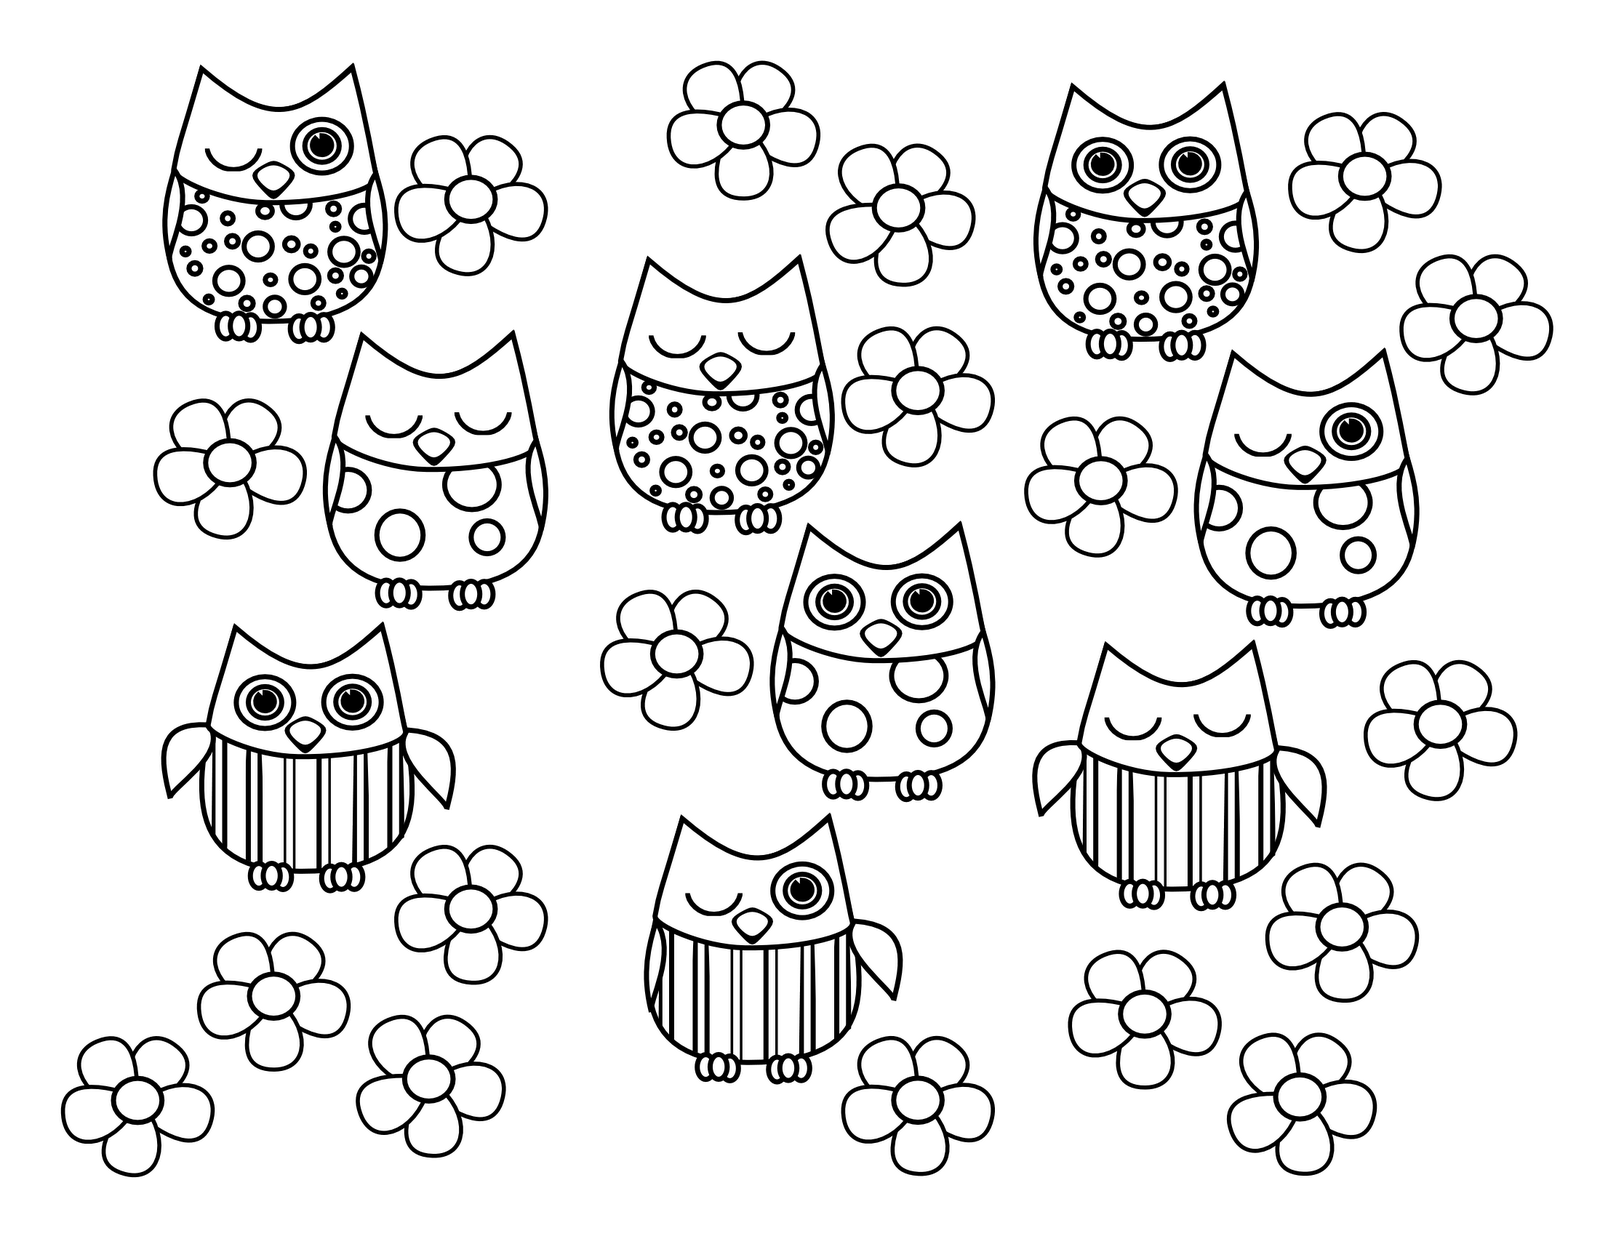 coloring pages for owls - photo#30